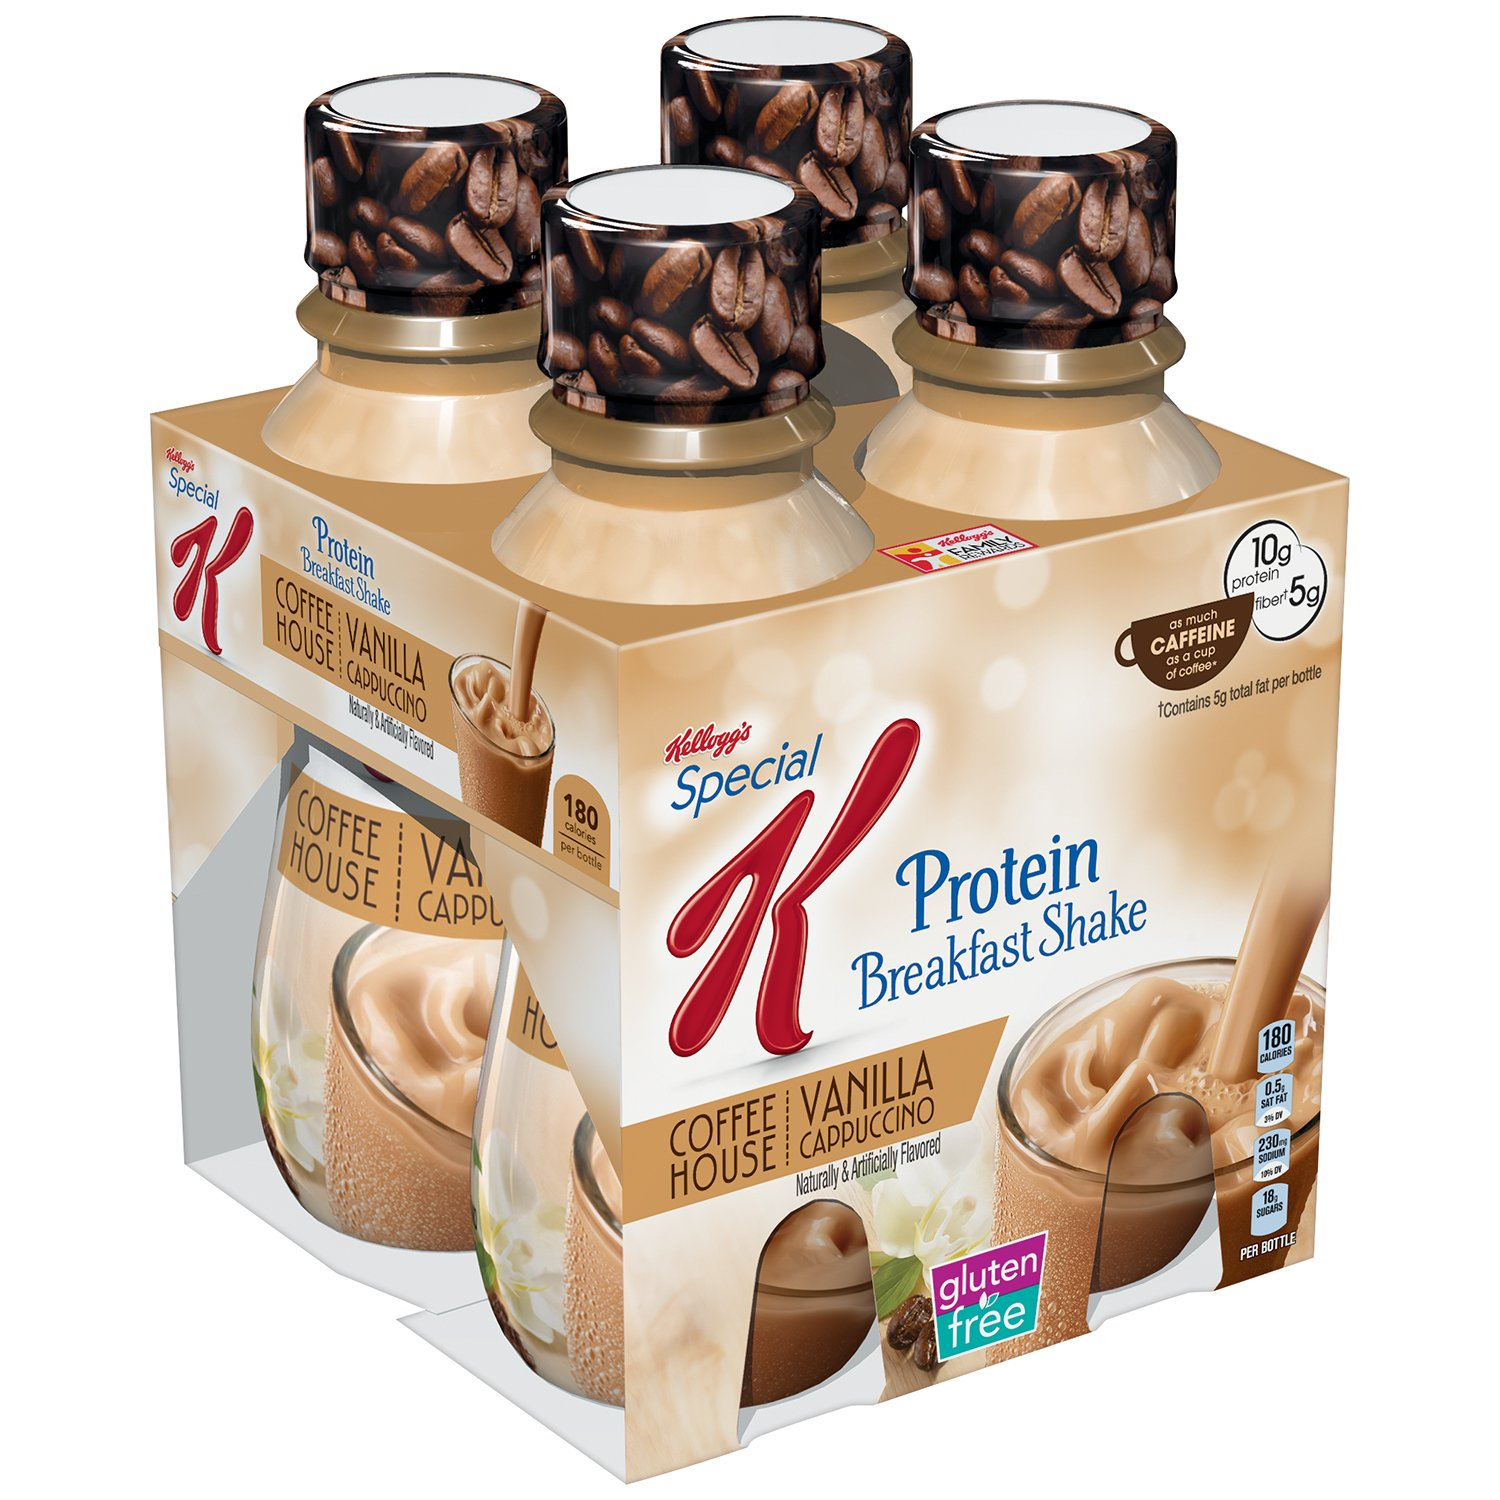 Kellogg's Special K Protein Cafe-Inspired Shake, Vanilla Cappuccino, 10 Ounce (Pack of 3)